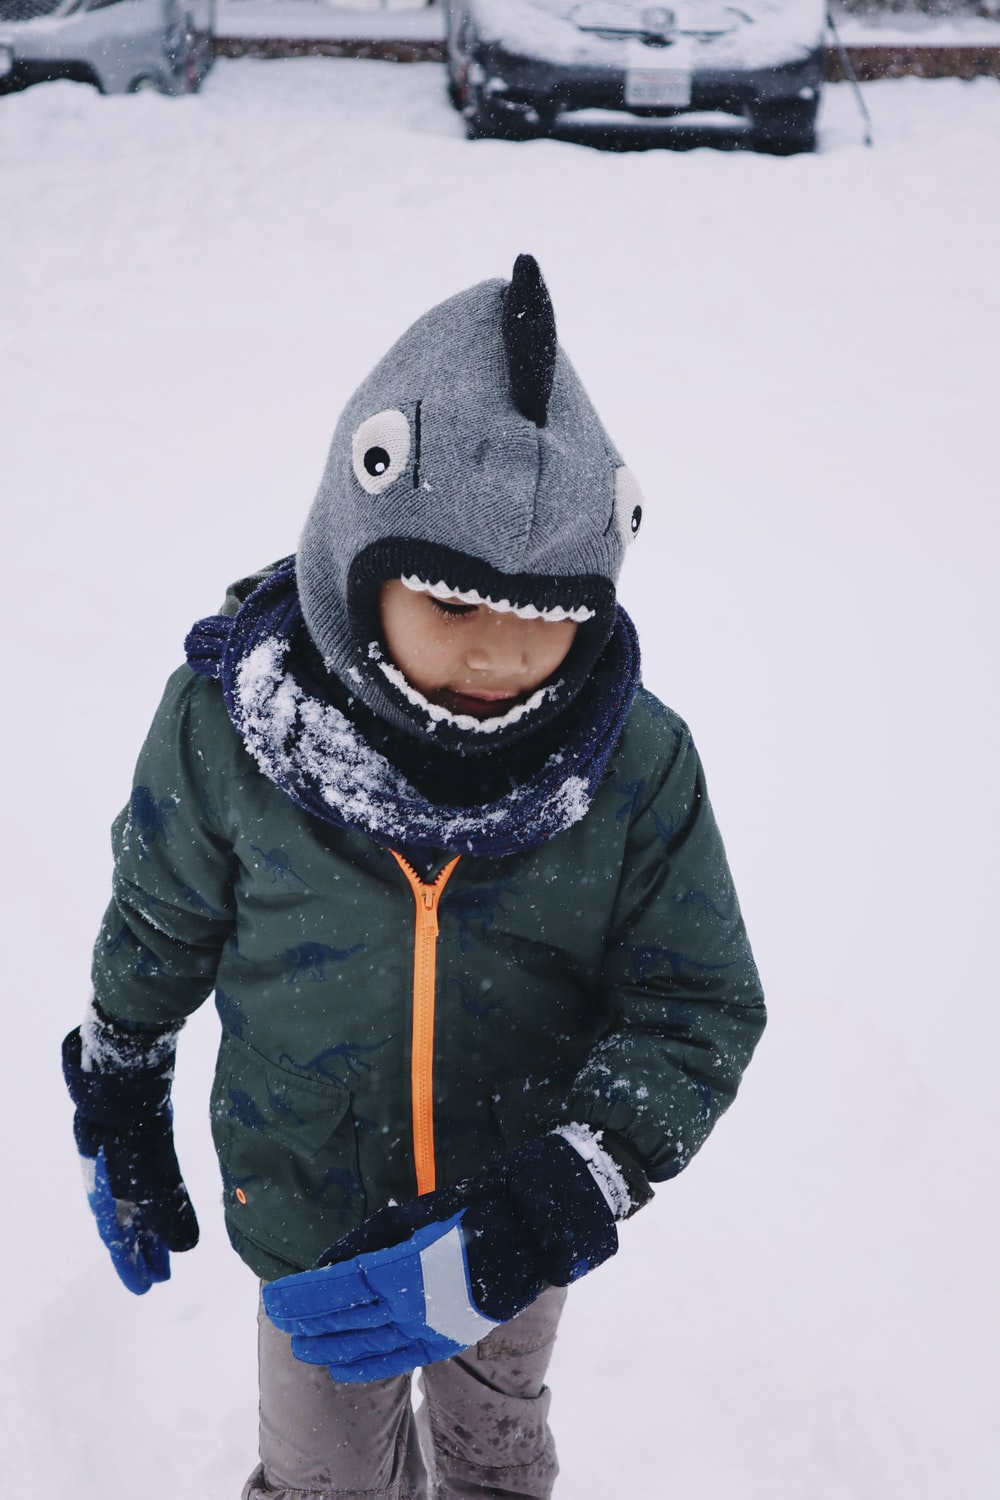 person in black winter coat and gray knit cap